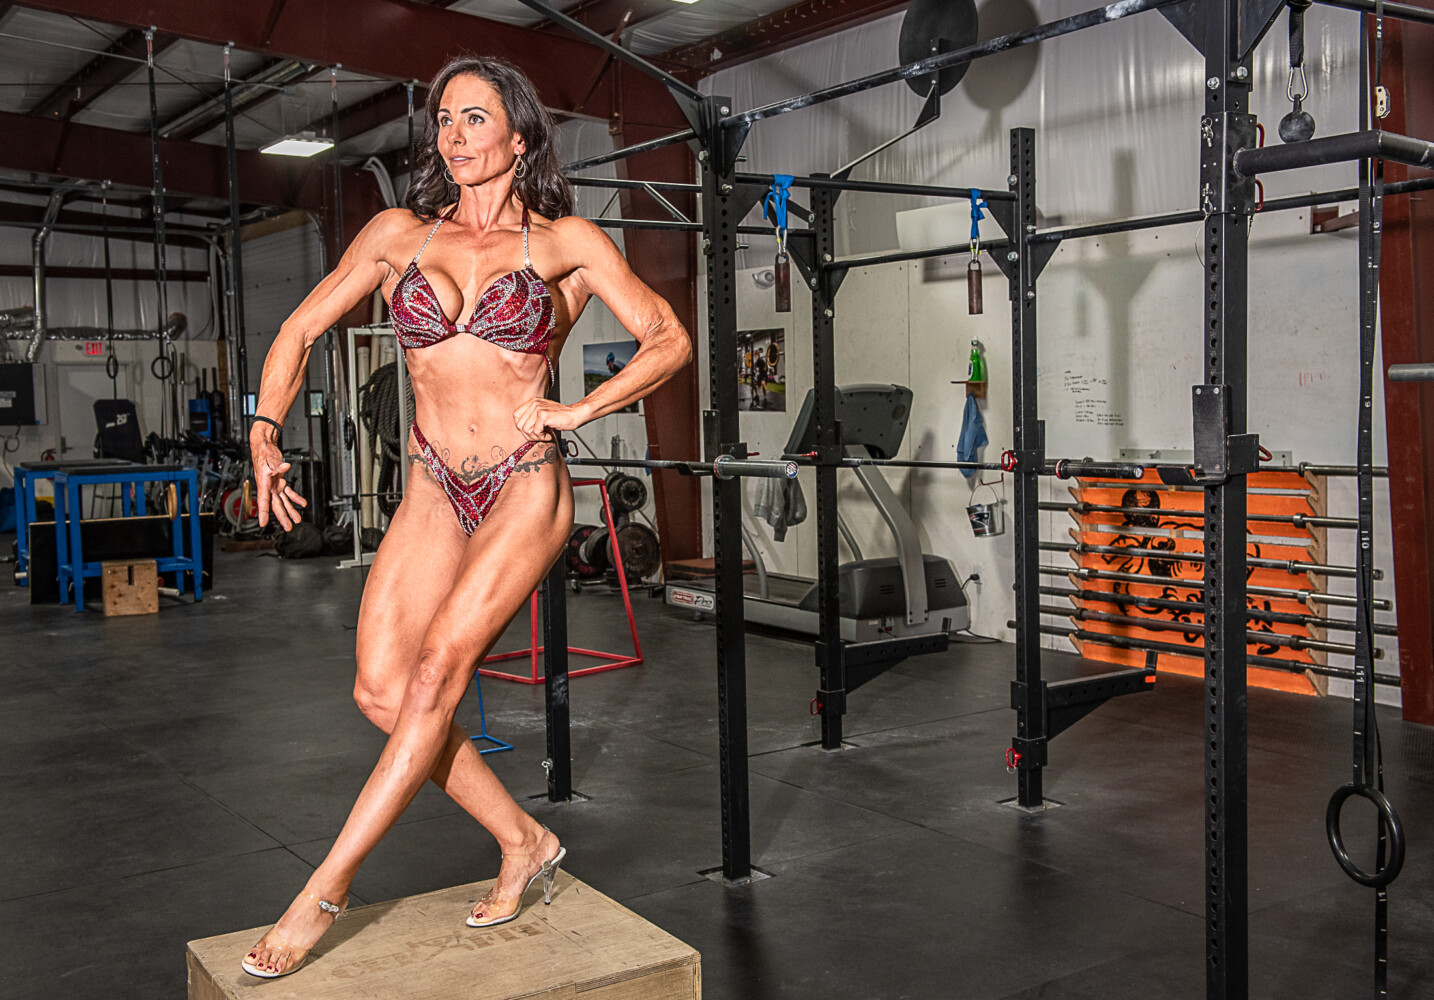 Otisfield native to compete in international bodybuilding competition | Lewiston Sun Journal